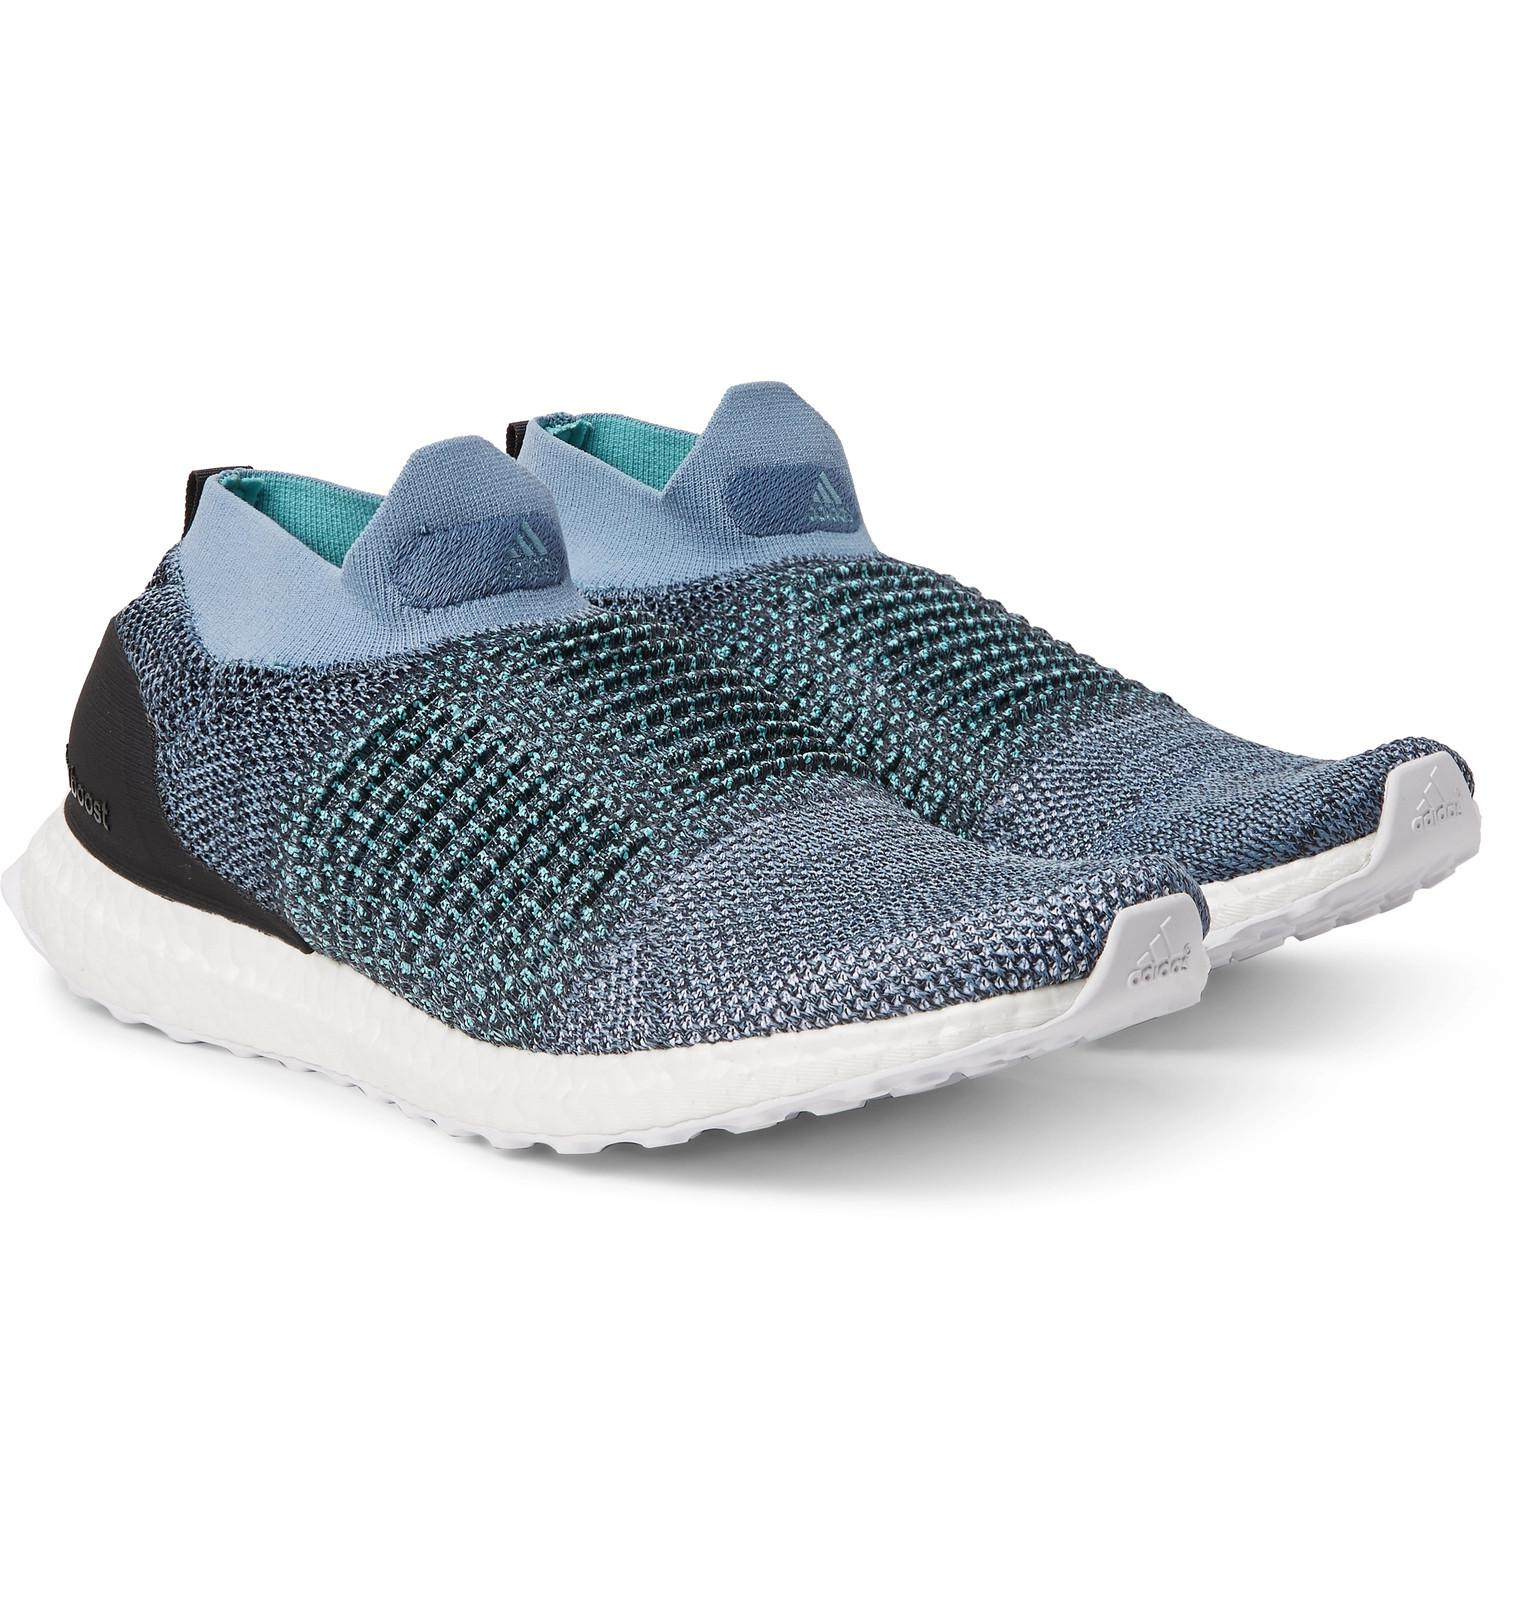 adidas Originals + Parley UltraBOOST Primeknit Slip-On Sneakers sale best prices low shipping online really online buy cheap purchase 5OP9eIbtd